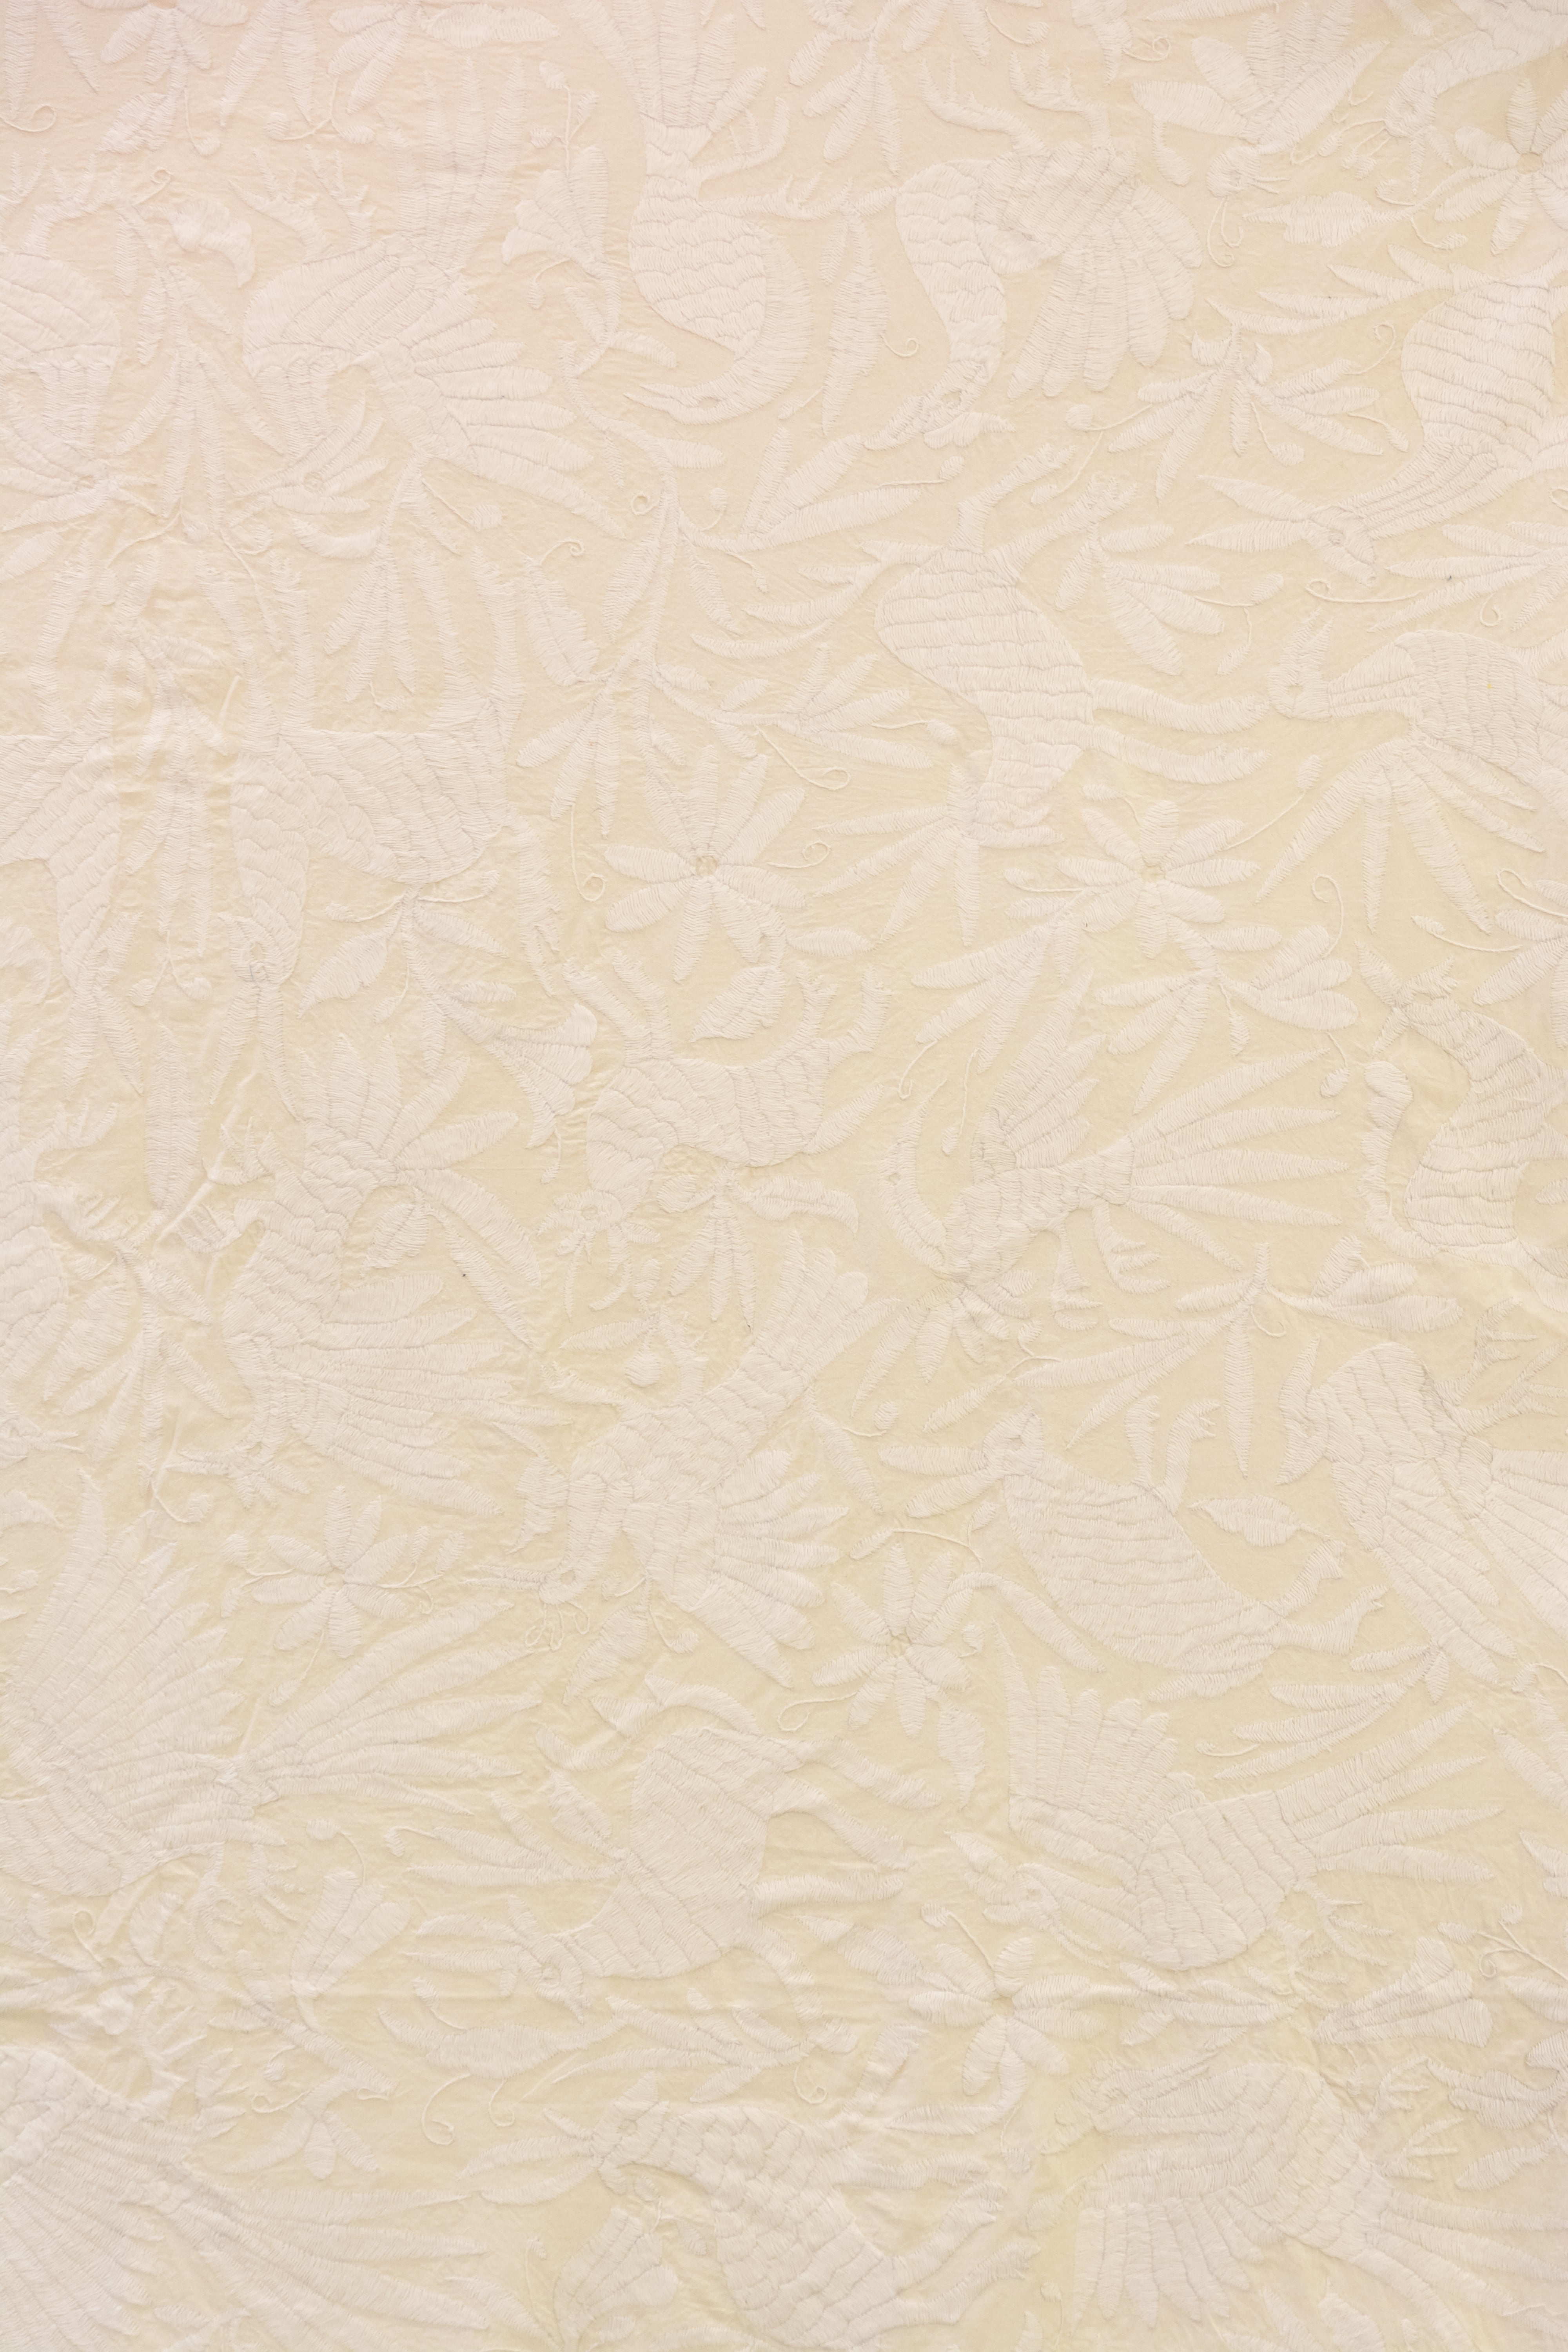 Beige Mexican Otomi decorative fabric